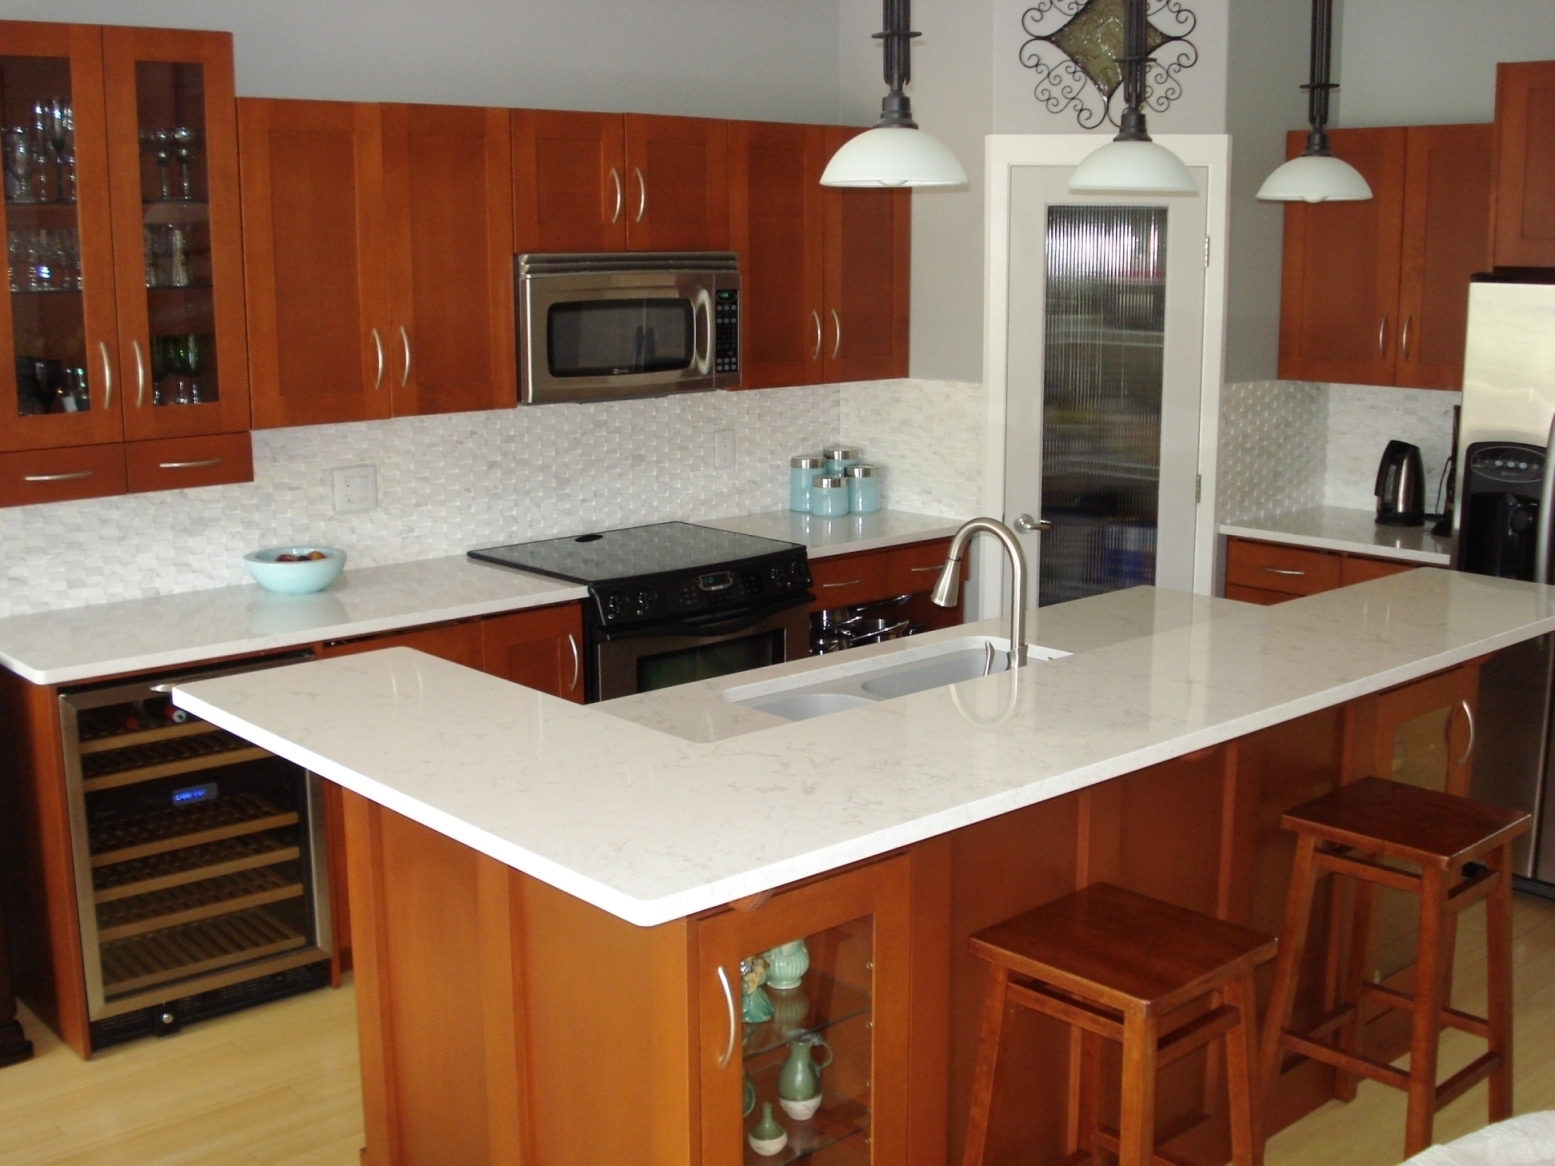 Cherry Kitchen Cabinets With Quartz Countertops